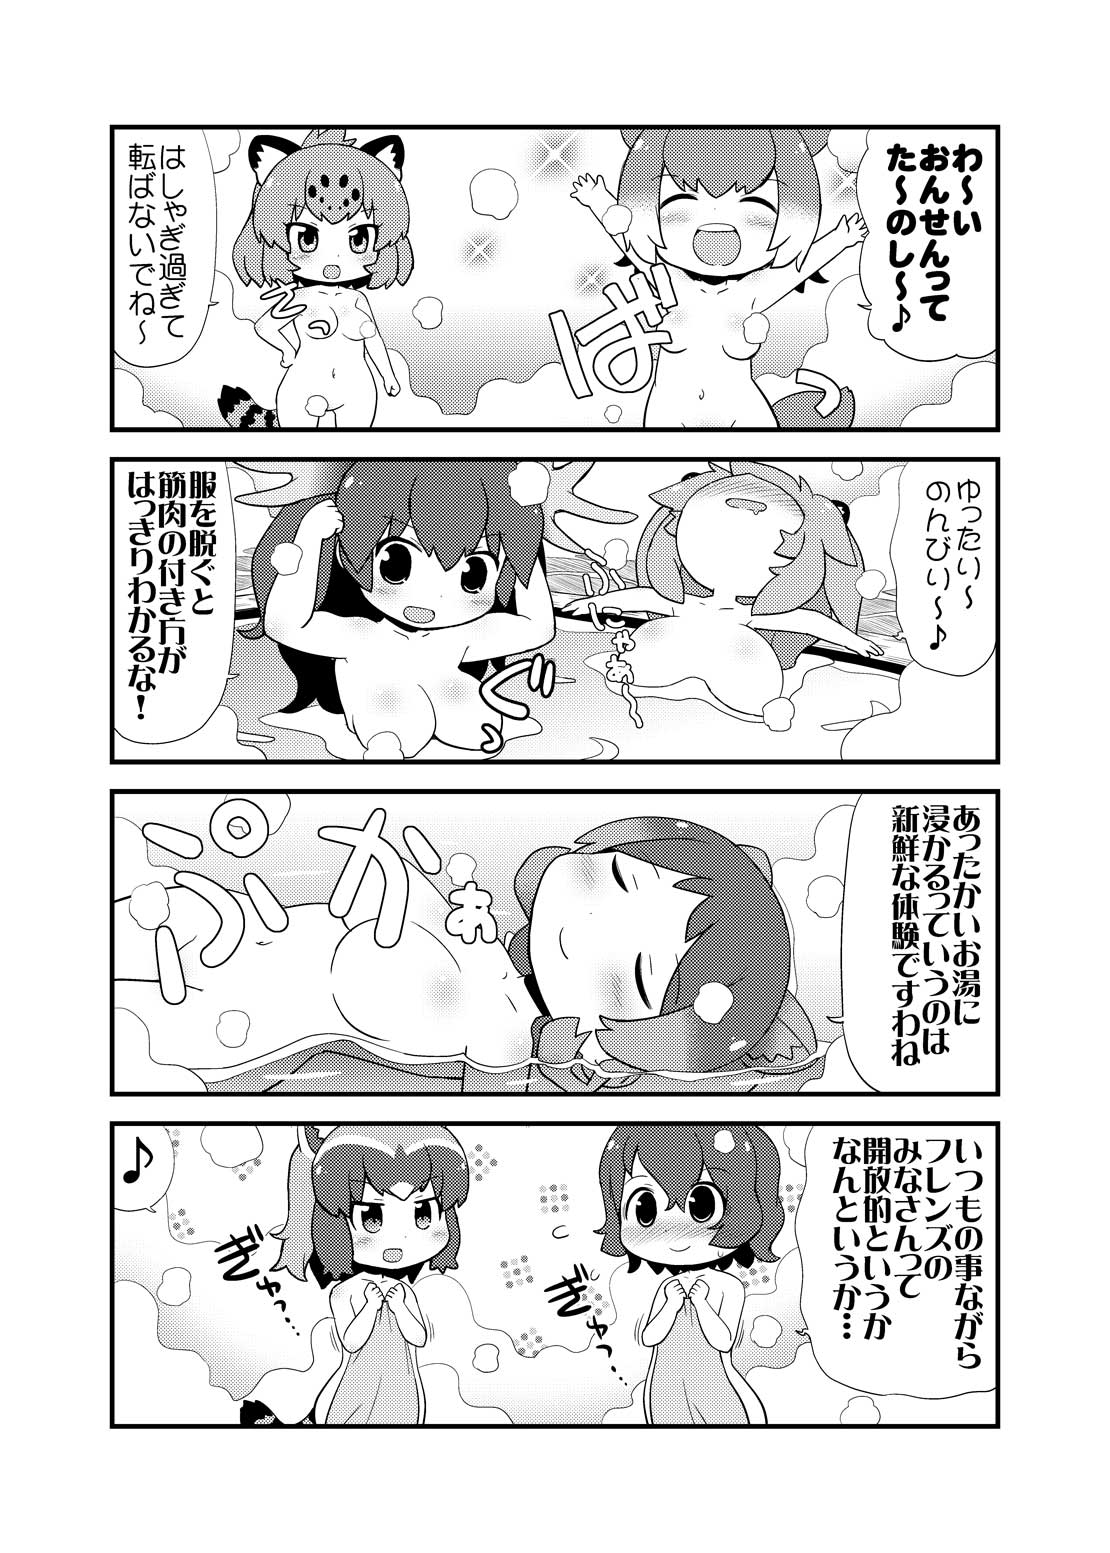 6+girls :d ^_^ afloat animal_ears antlers arm_at_side arms_up bangs bathing blush breasts chibi closed_eyes closed_mouth commentary_request common_raccoon_(kemono_friends) convenient_censoring eighth_note extra_ears eyebrows_visible_through_hair flying_sweatdrops gerotan groin hand_on_hip highres hippopotamus_(kemono_friends) hippopotamus_ears jaguar_(kemono_friends) jaguar_ears jaguar_tail kaban_(kemono_friends) kemono_friends lion_(kemono_friends) lion_ears long_hair moose_(kemono_friends) moose_ears multiple_girls musical_note navel nose_blush nude onsen open_mouth otter_ears otter_tail out-of-frame_censoring partially_submerged raccoon_ears raccoon_tail short_hair small-clawed_otter_(kemono_friends) smile sound_effects spoken_musical_note standing steam stomach tail towel translation_request water